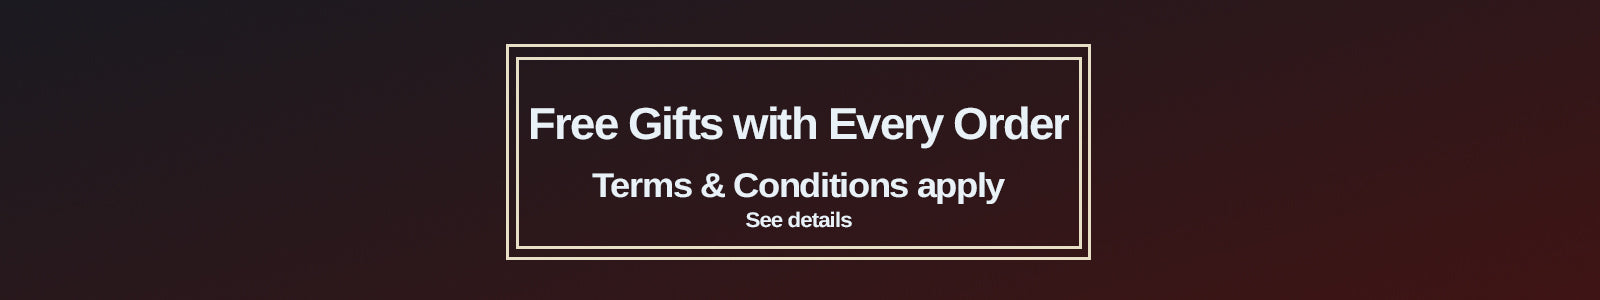 free gifts with every order. Terms and conditions apply